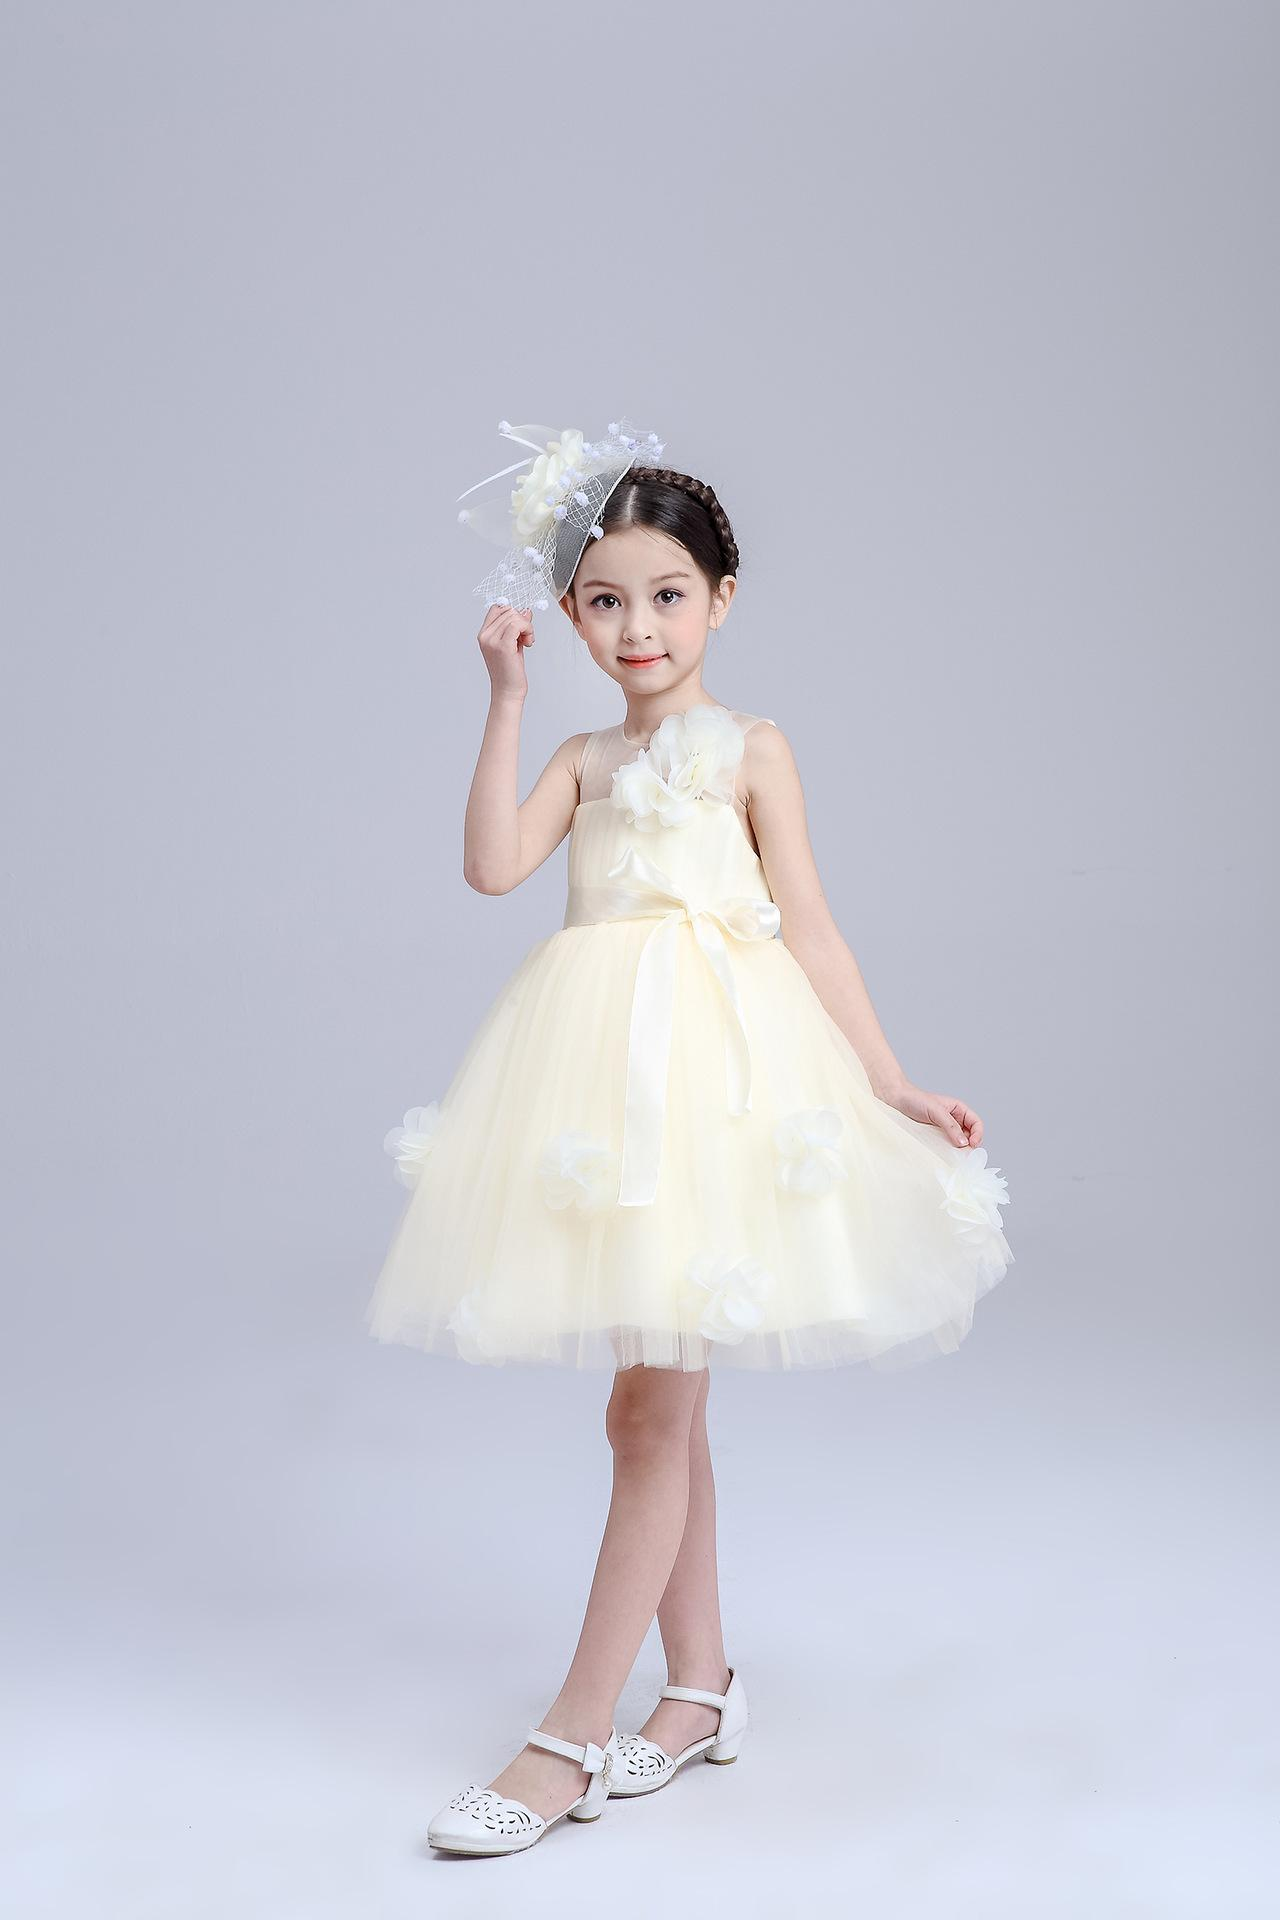 8b0383385a6a Childrens Girls Cute Dresses Child Clothes Baby Summer Dress Kids Wear  Casual Dresses Fashion Princess Dress Children Clothing Lace Dresses Wind  Organza ...